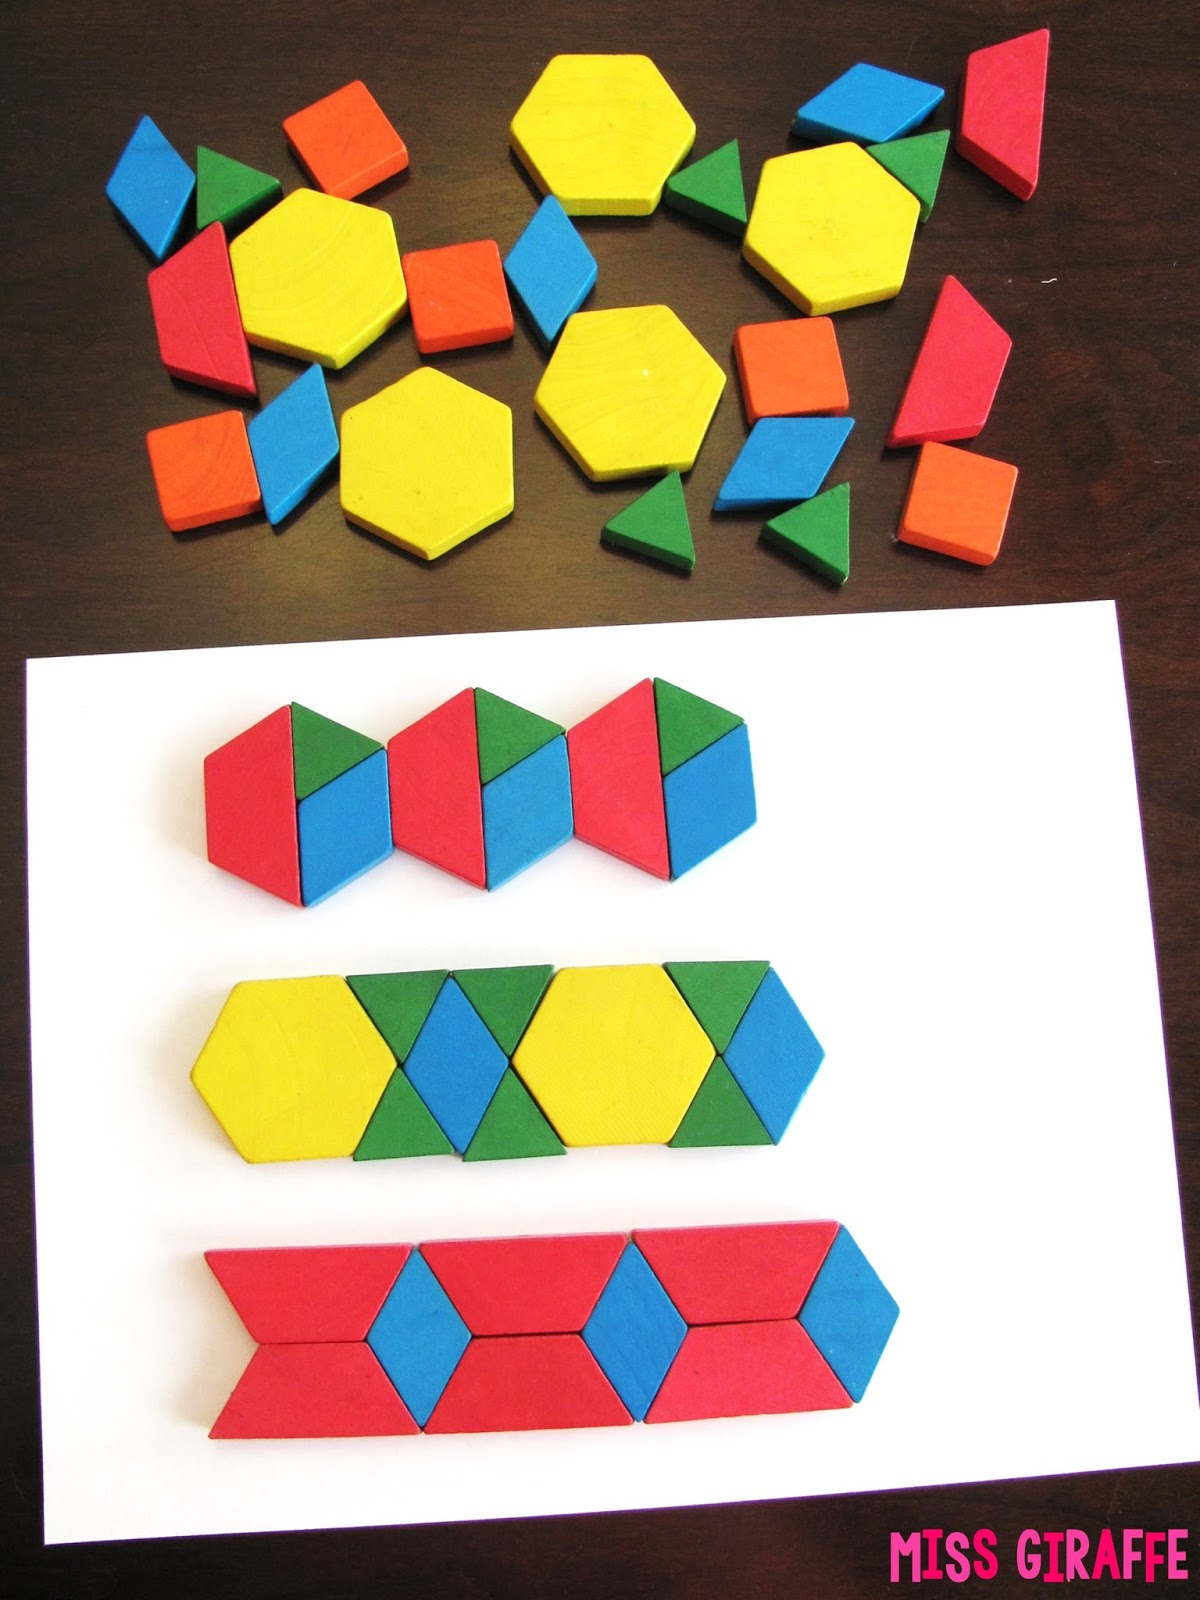 worksheet Pattern Blocks Worksheet miss giraffes class composing shapes in 1st grade extend the pattern activity with blocks and other fun geometry activities for practicing shapes